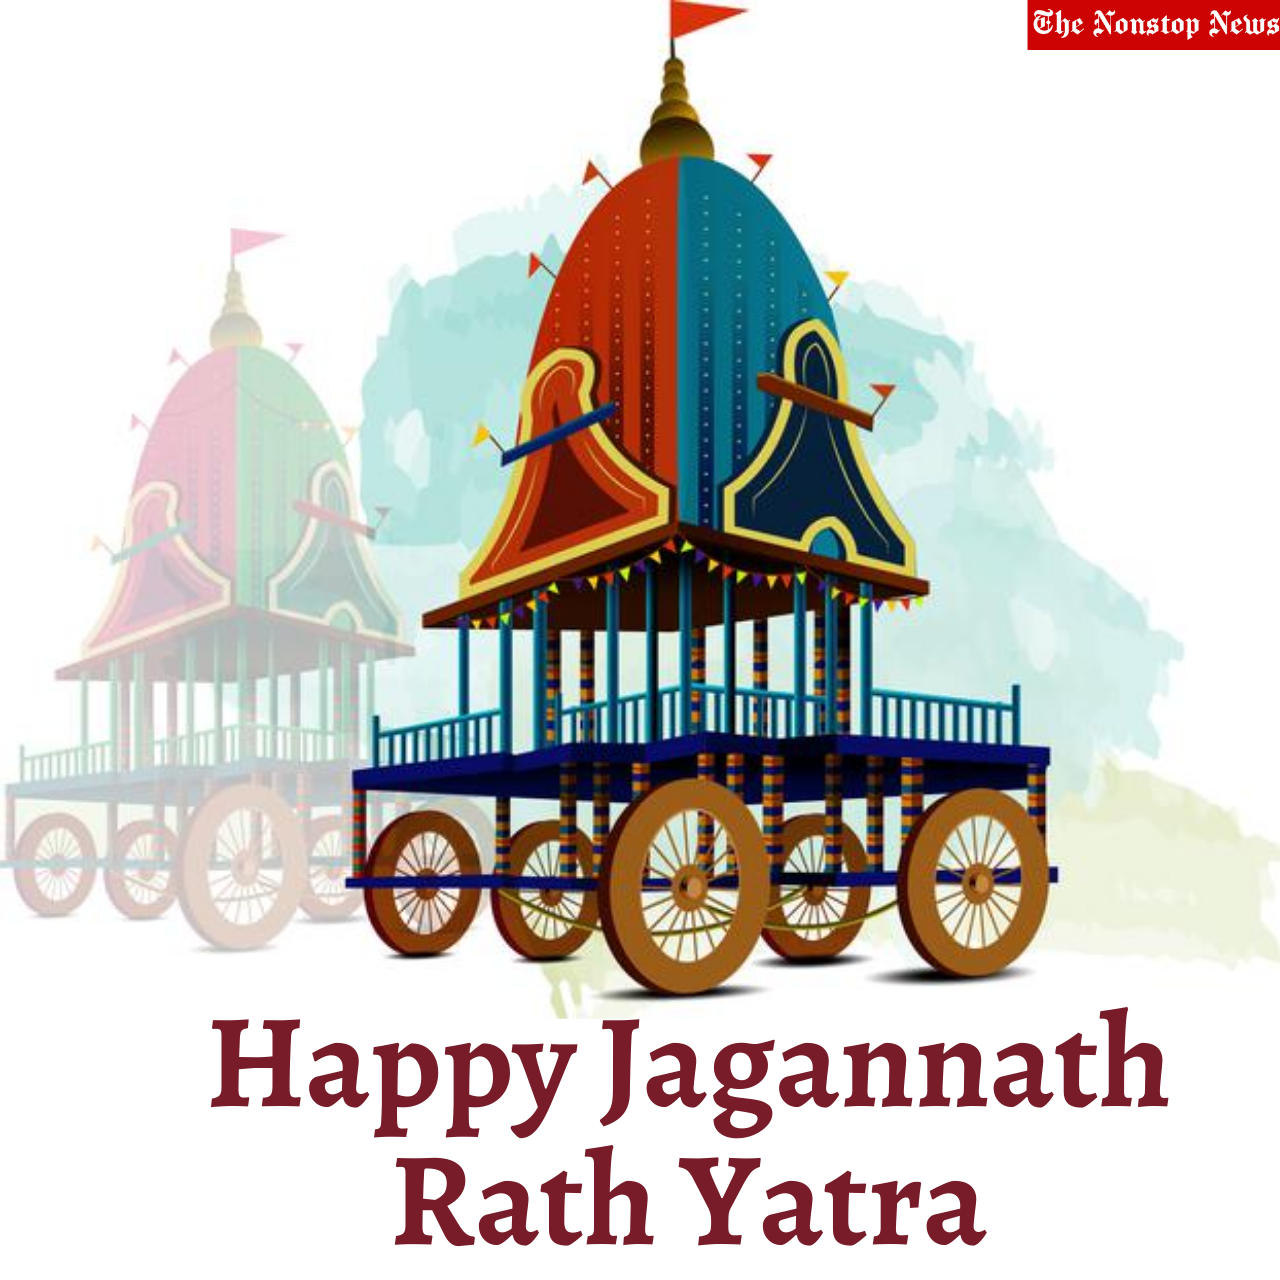 Happy Jagannath Rath Yatra 2021 Wishes, Greetings, Messages, Drawing, Quotes, Images to greet your Loved Ones